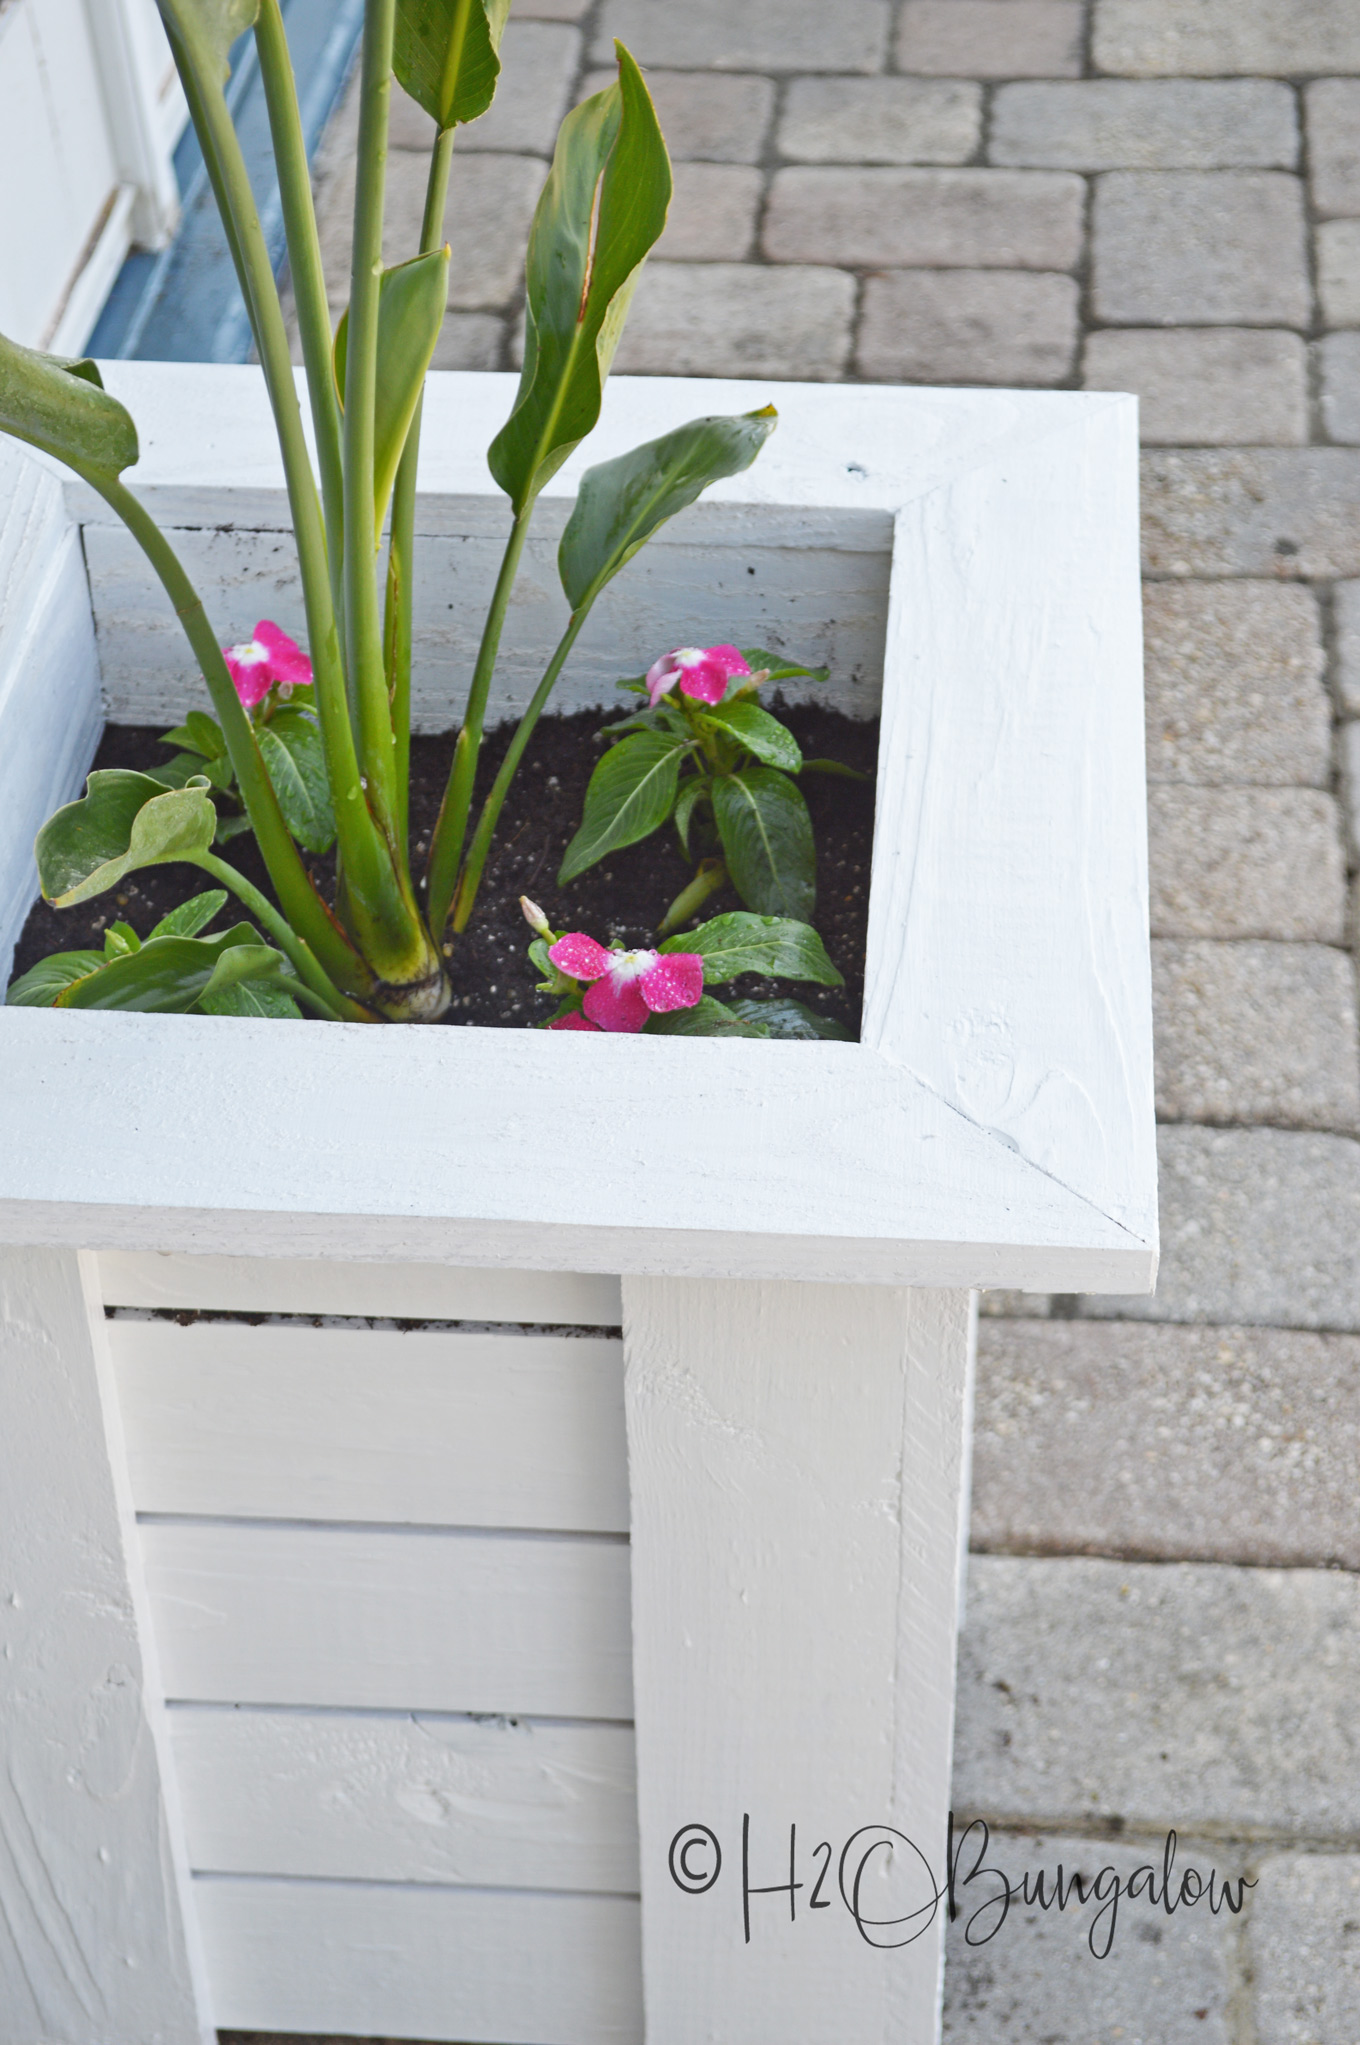 I've got 7 colorful spring outdoor DIY projects with tutorials to share with you today.  I love spring home decor projects, they brighten dark corners and remind us of pretty flowers blooming, warmer weather ahead. Add one of these to freshen up your outdoor space and be ready for spring and warmer weather ahead.